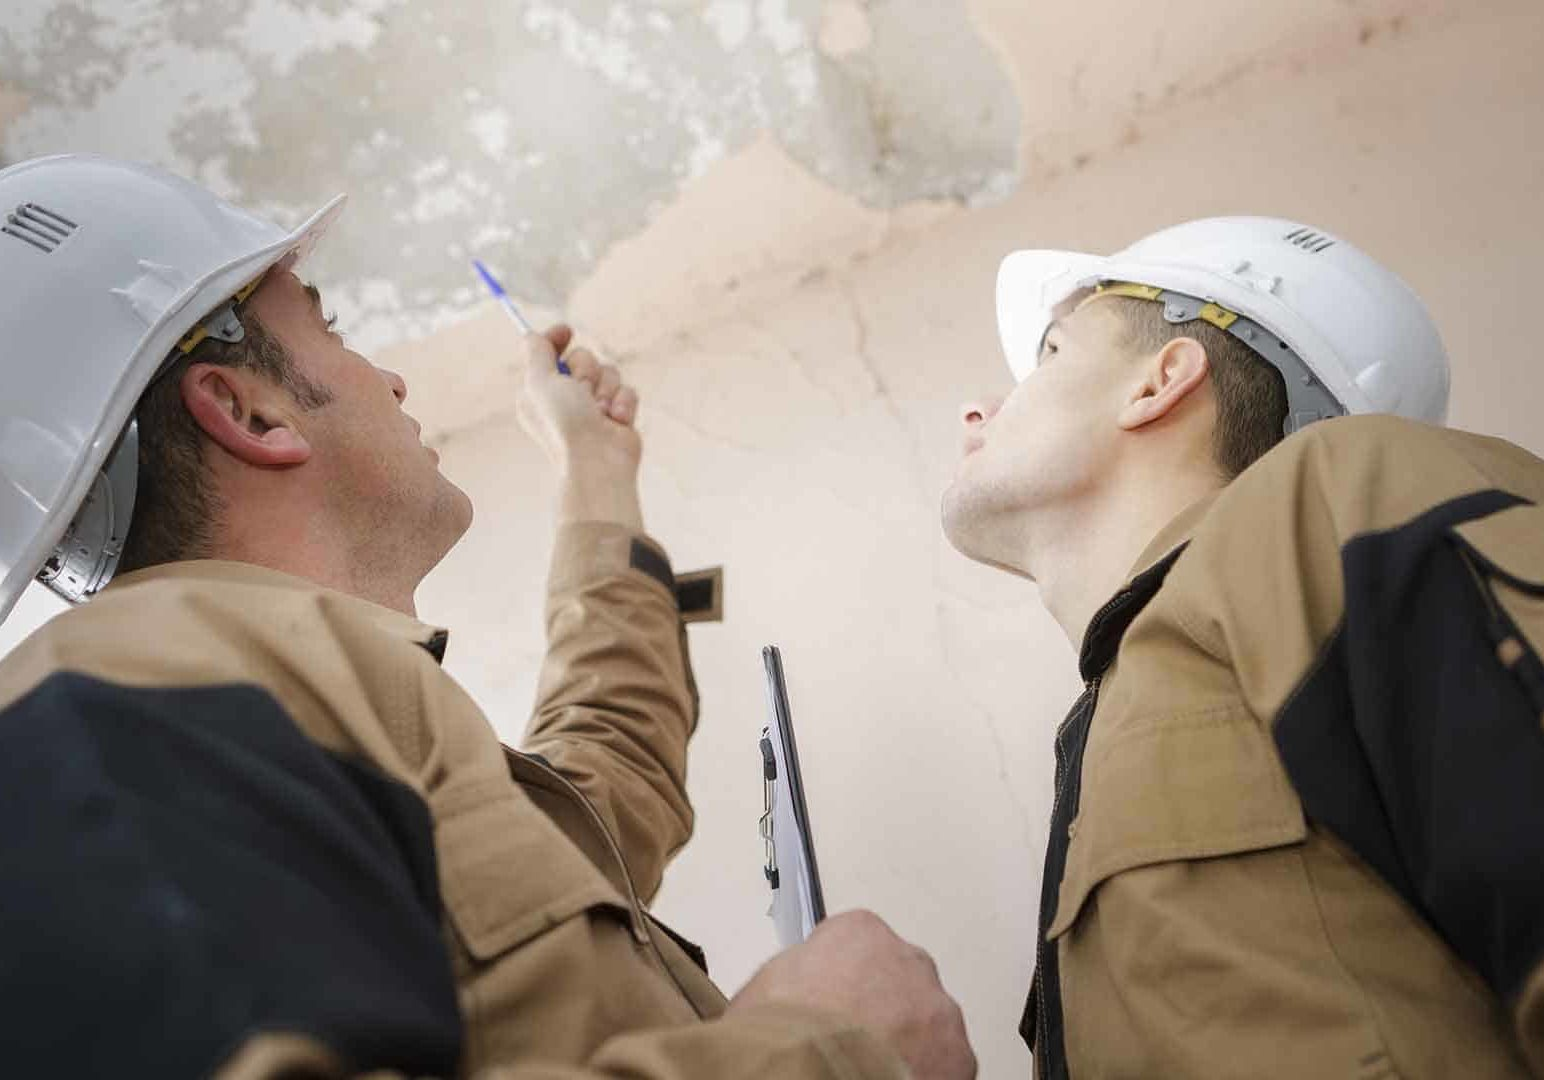 construction workers reviewing damage